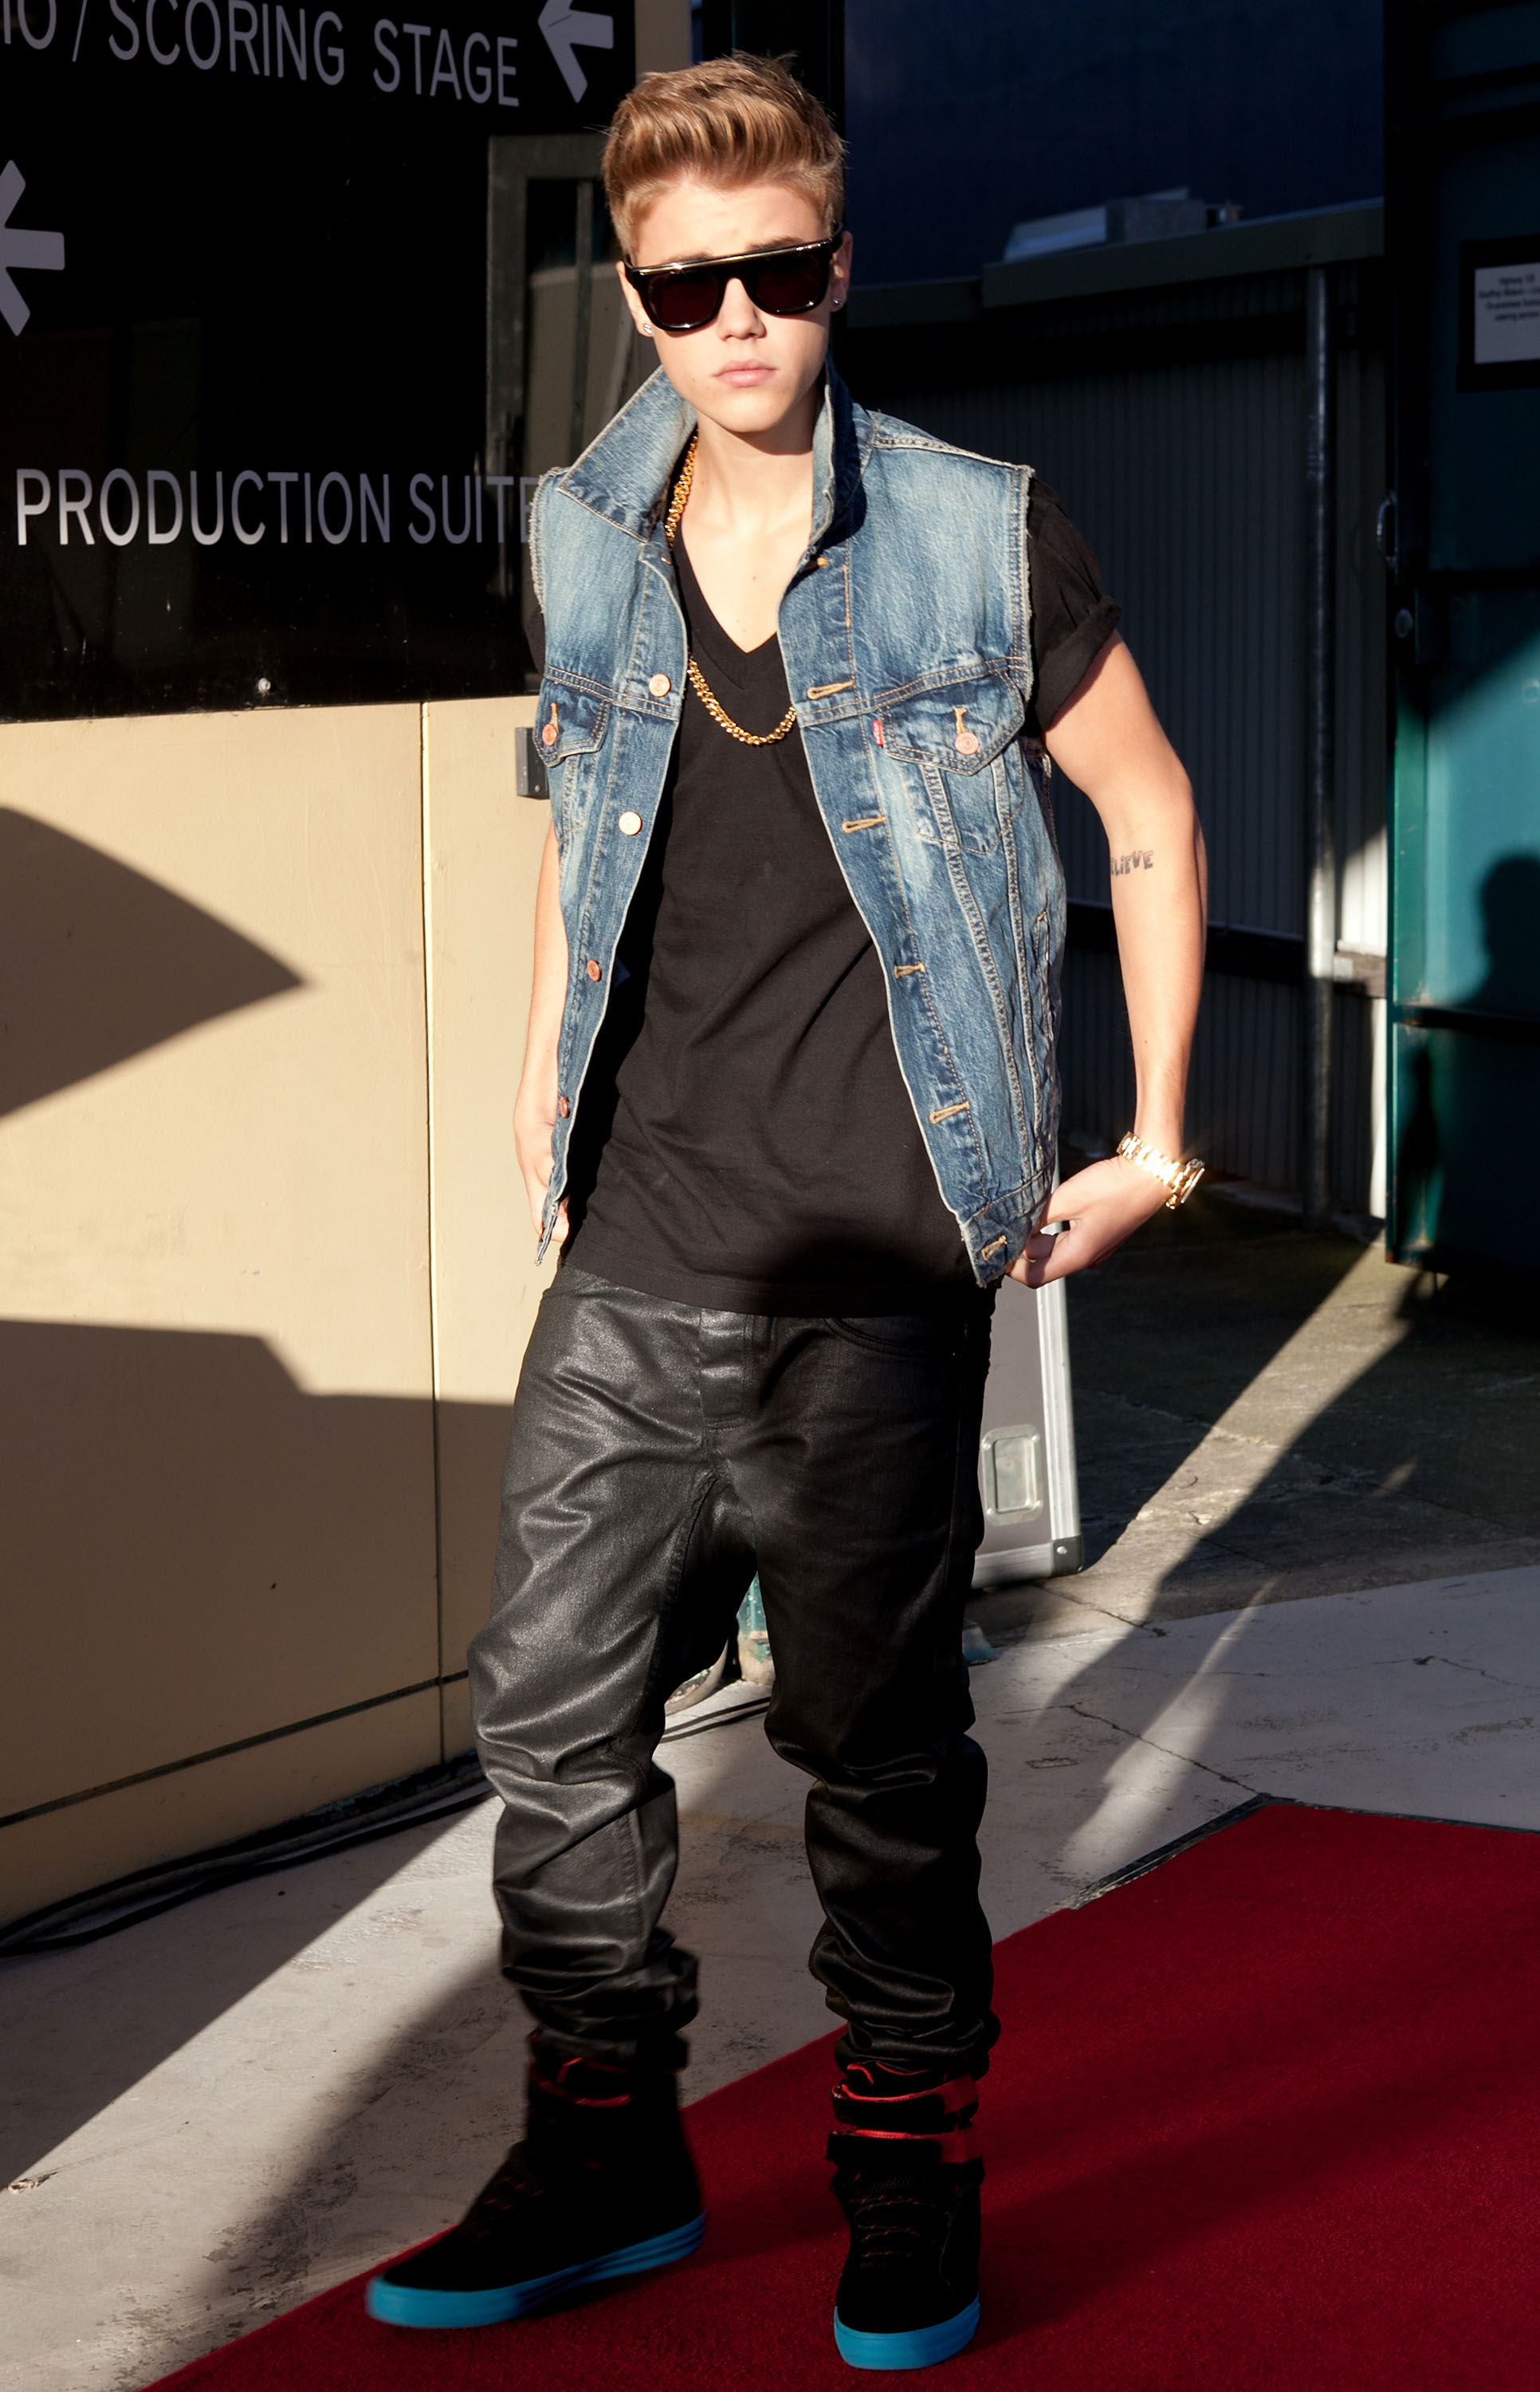 justin bieber's style  hypebeast forums